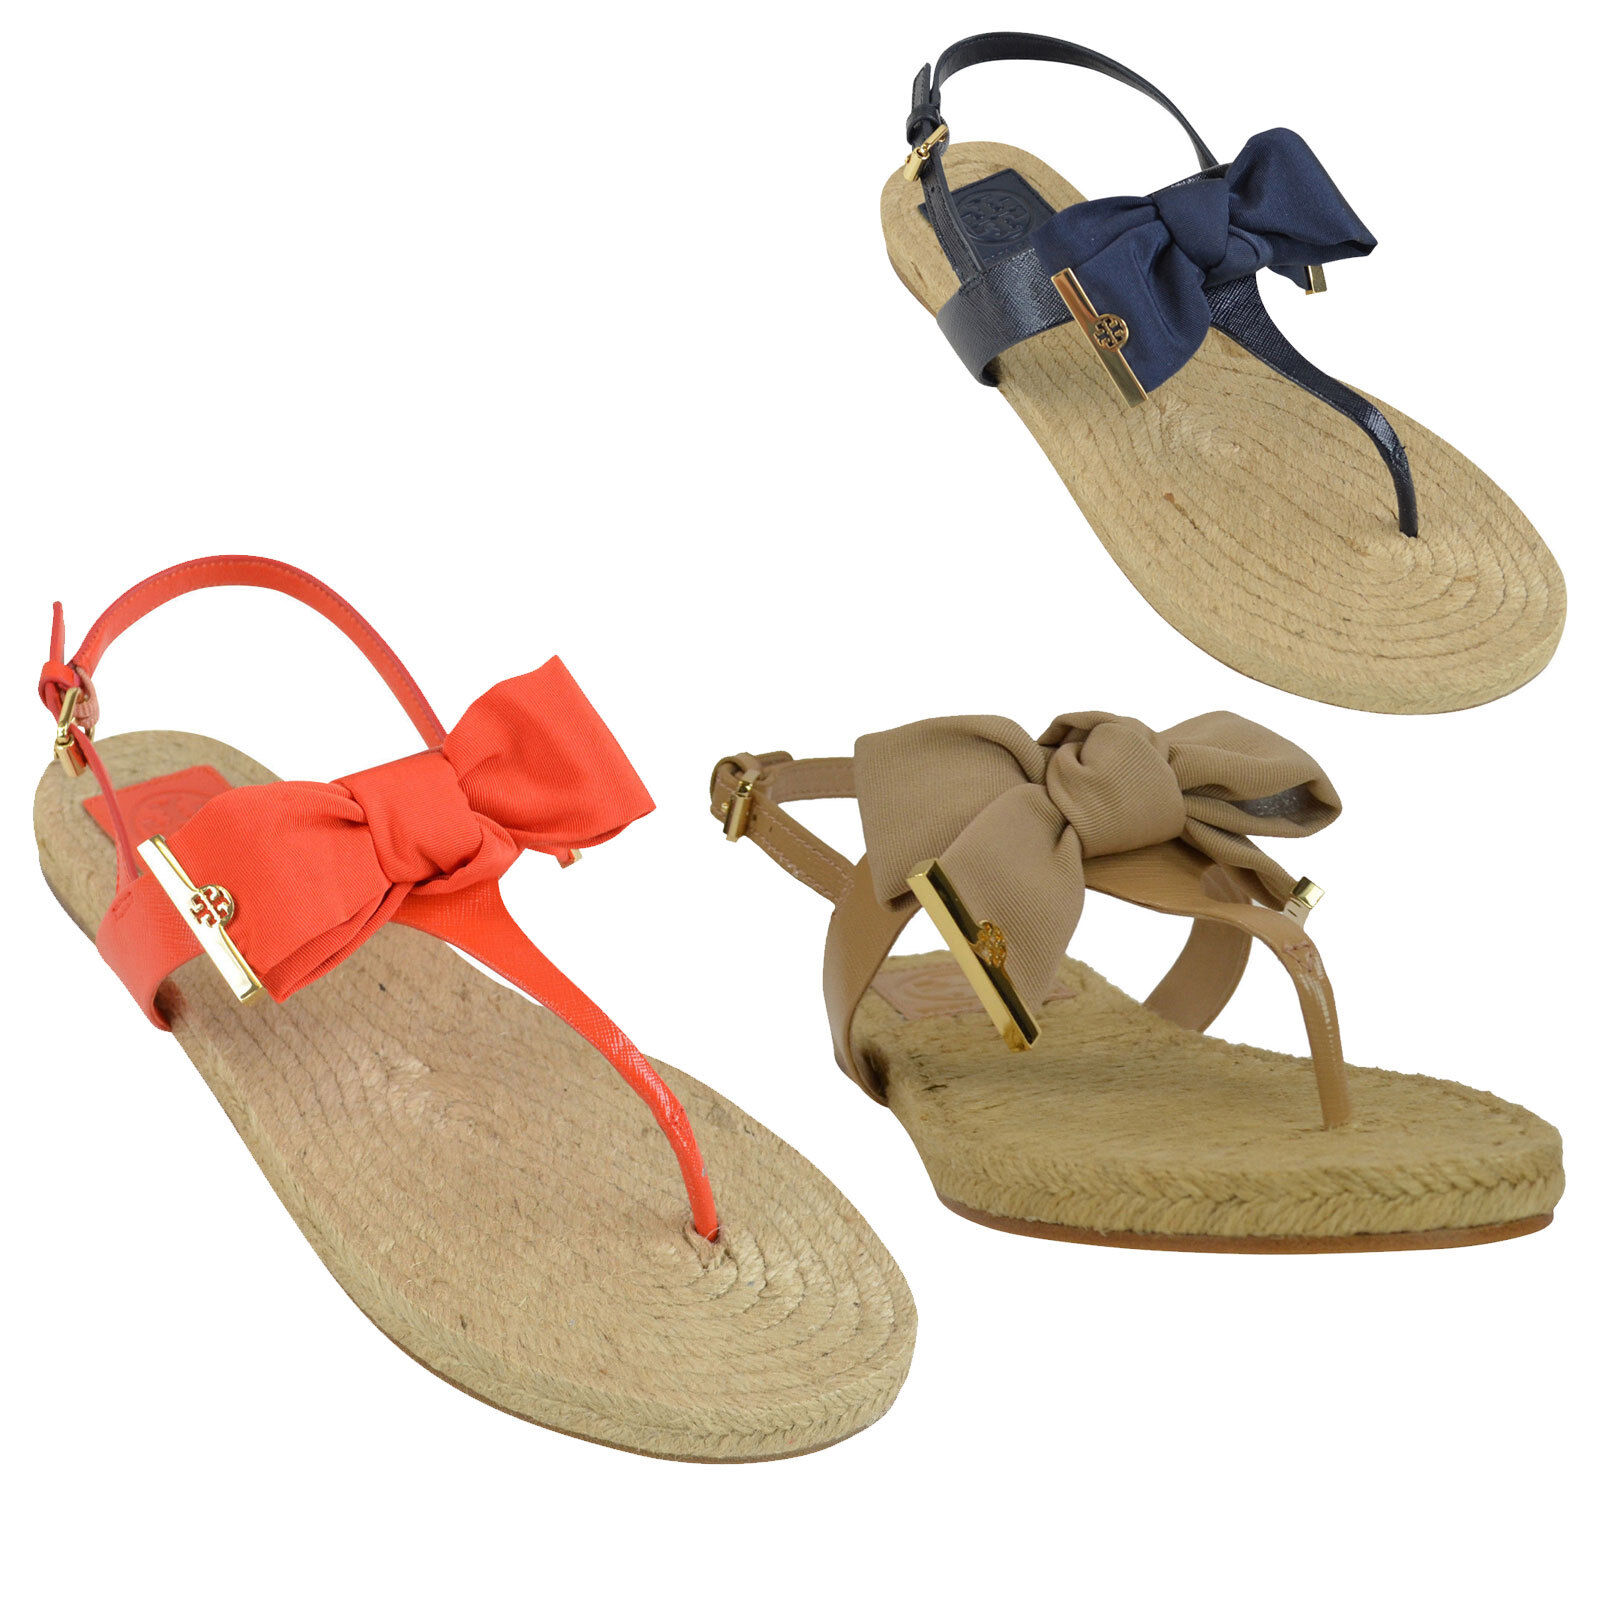 d60906444d4 Tory Burch PENNY flats Sandals Pick Size and Color